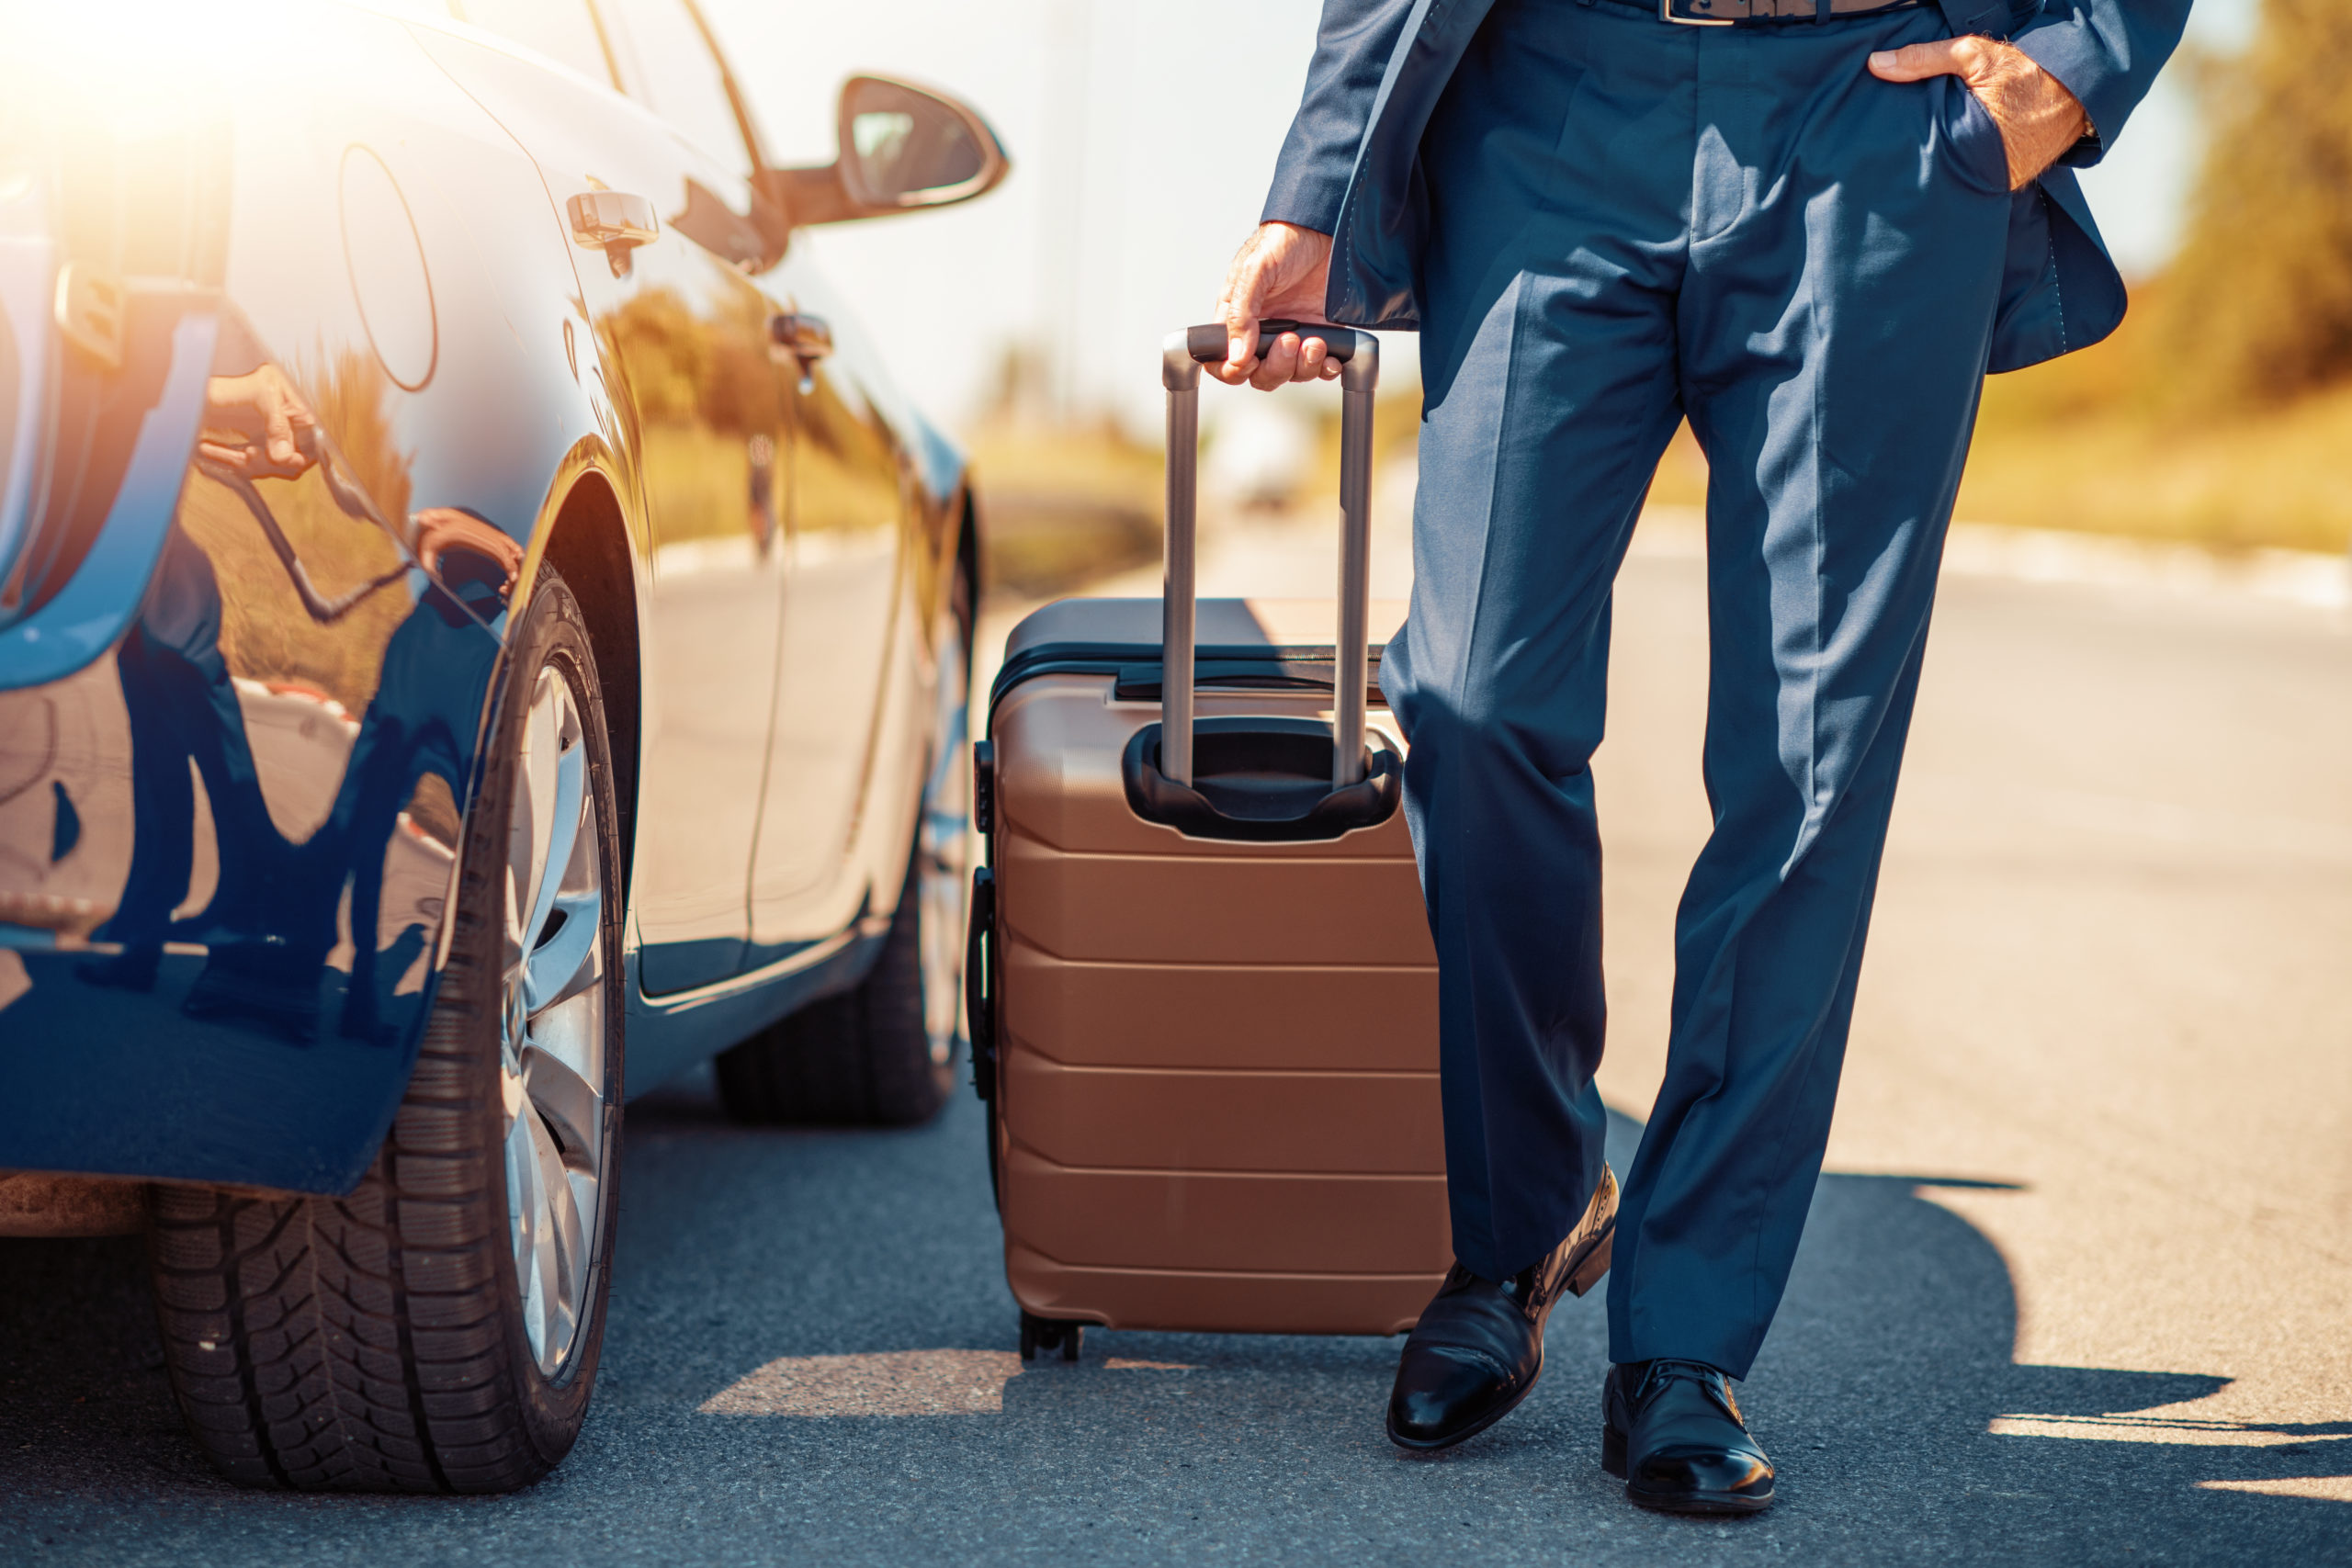 10 Tips for Dealing With the Rental Car Shortage | SmarterTravel